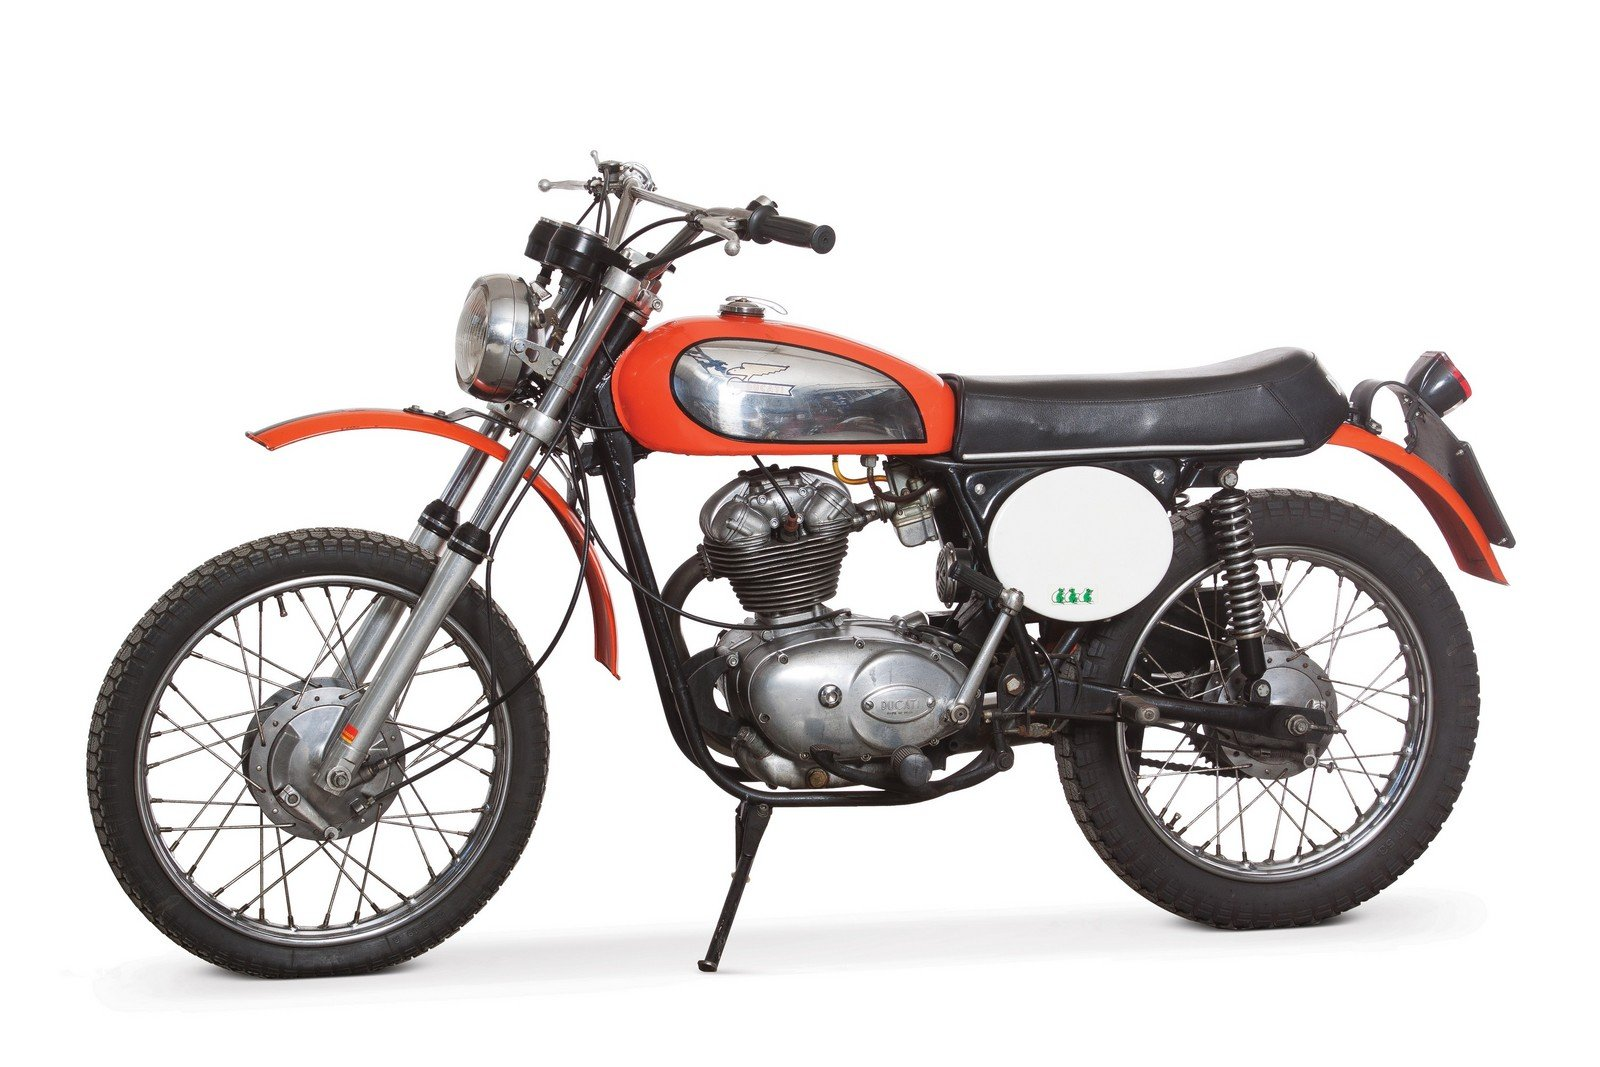 1970 ducati 125 scrambler picture 454443 motorcycle review top speed. Black Bedroom Furniture Sets. Home Design Ideas